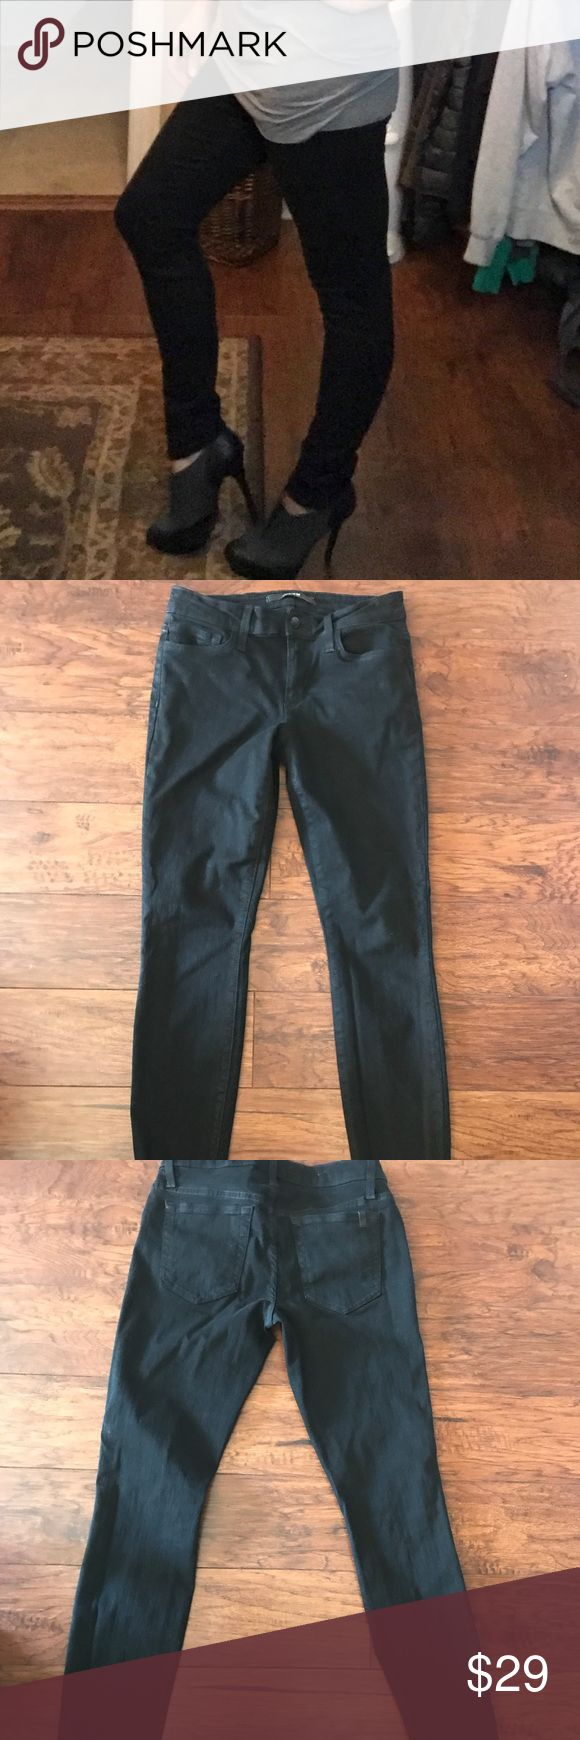 Paige denim Black pants size 27 These are really cute, semi-stretchy skinny cut pants. They're kind of a cross between black jeans and leggings (material wise). Size 27 worn once. Paige Jeans Jeans Skinny